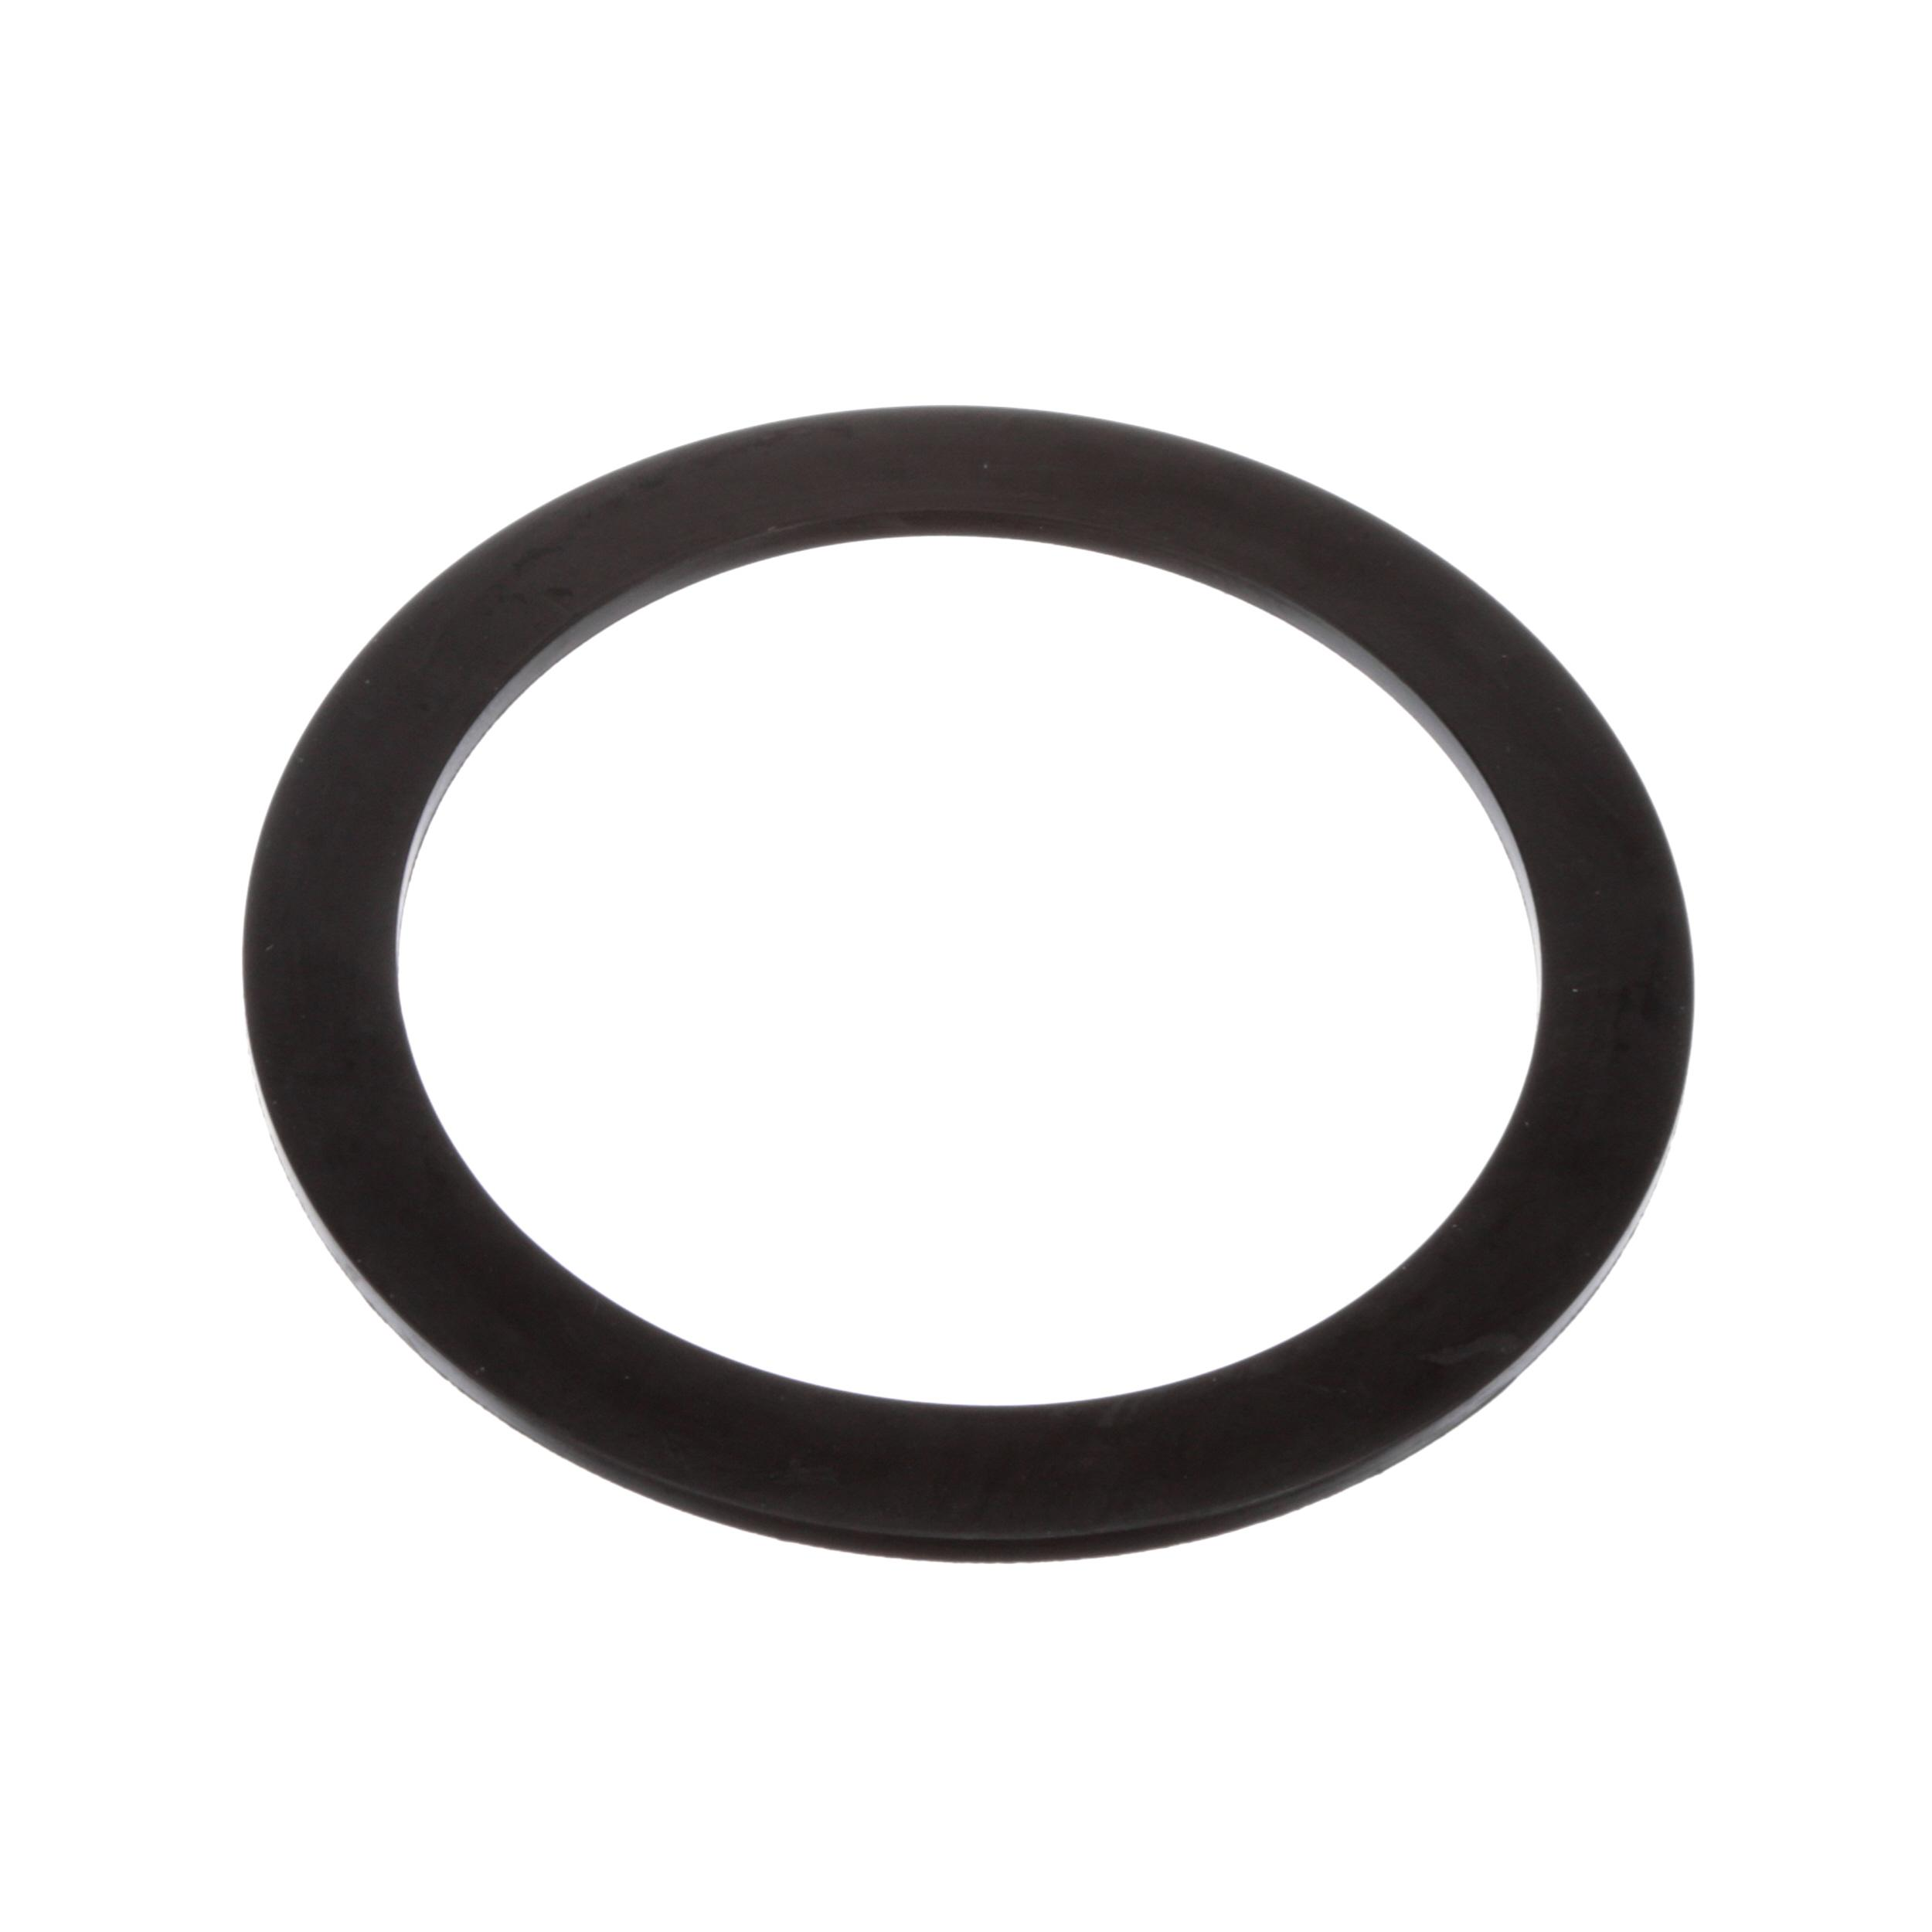 T&S BRASS GASKET FOR WASTE DRAIN VALVE